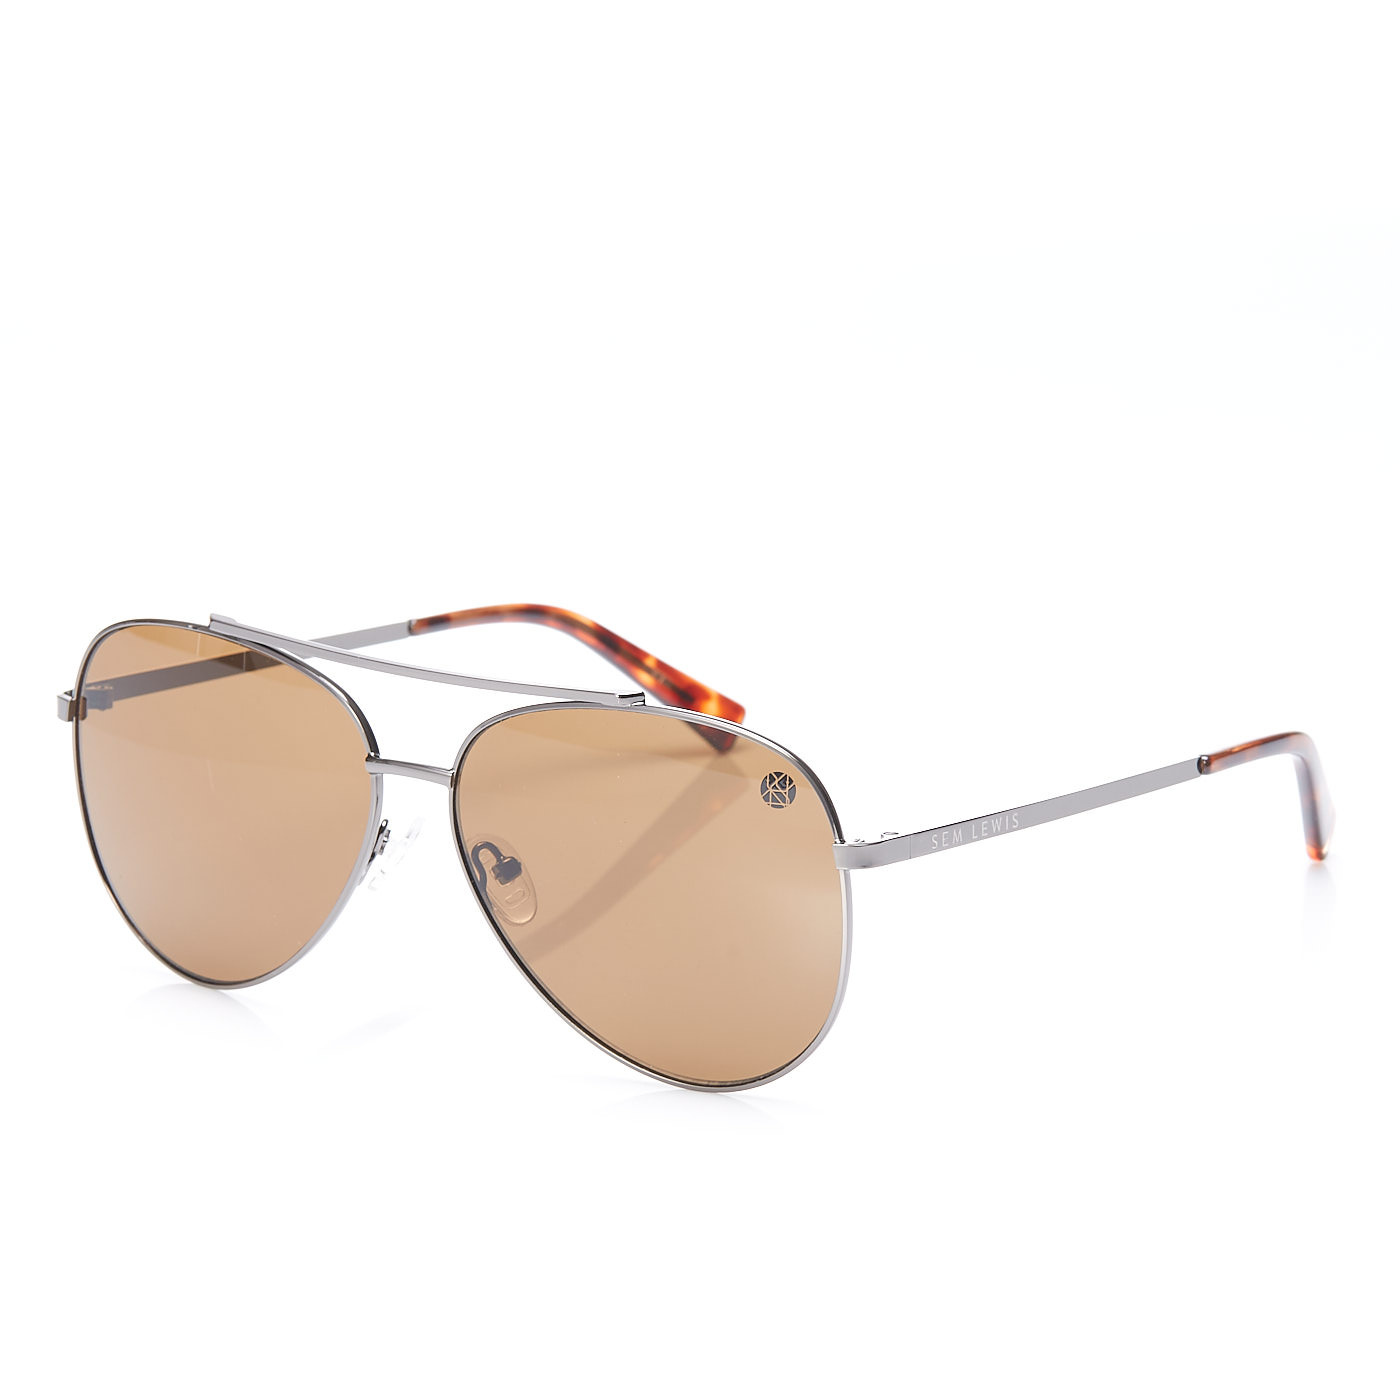 Free Sem Lewis sunglasses worth €60,-